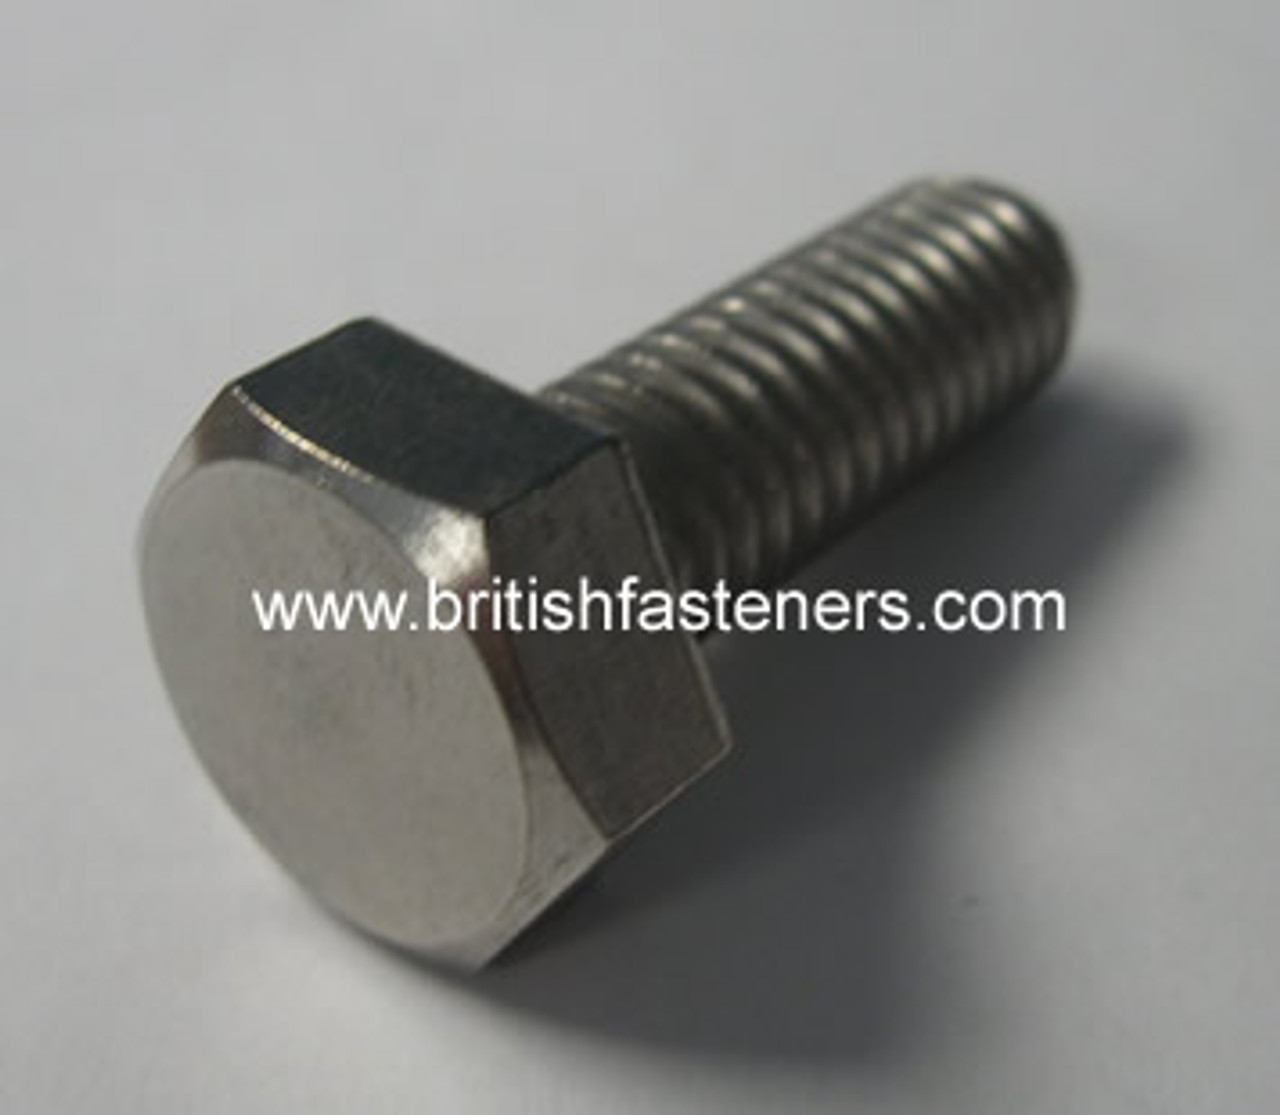 "BSW 1/2"" - 12 X 1-1/2"" STAINLESS HEX SCREW - (6306)"